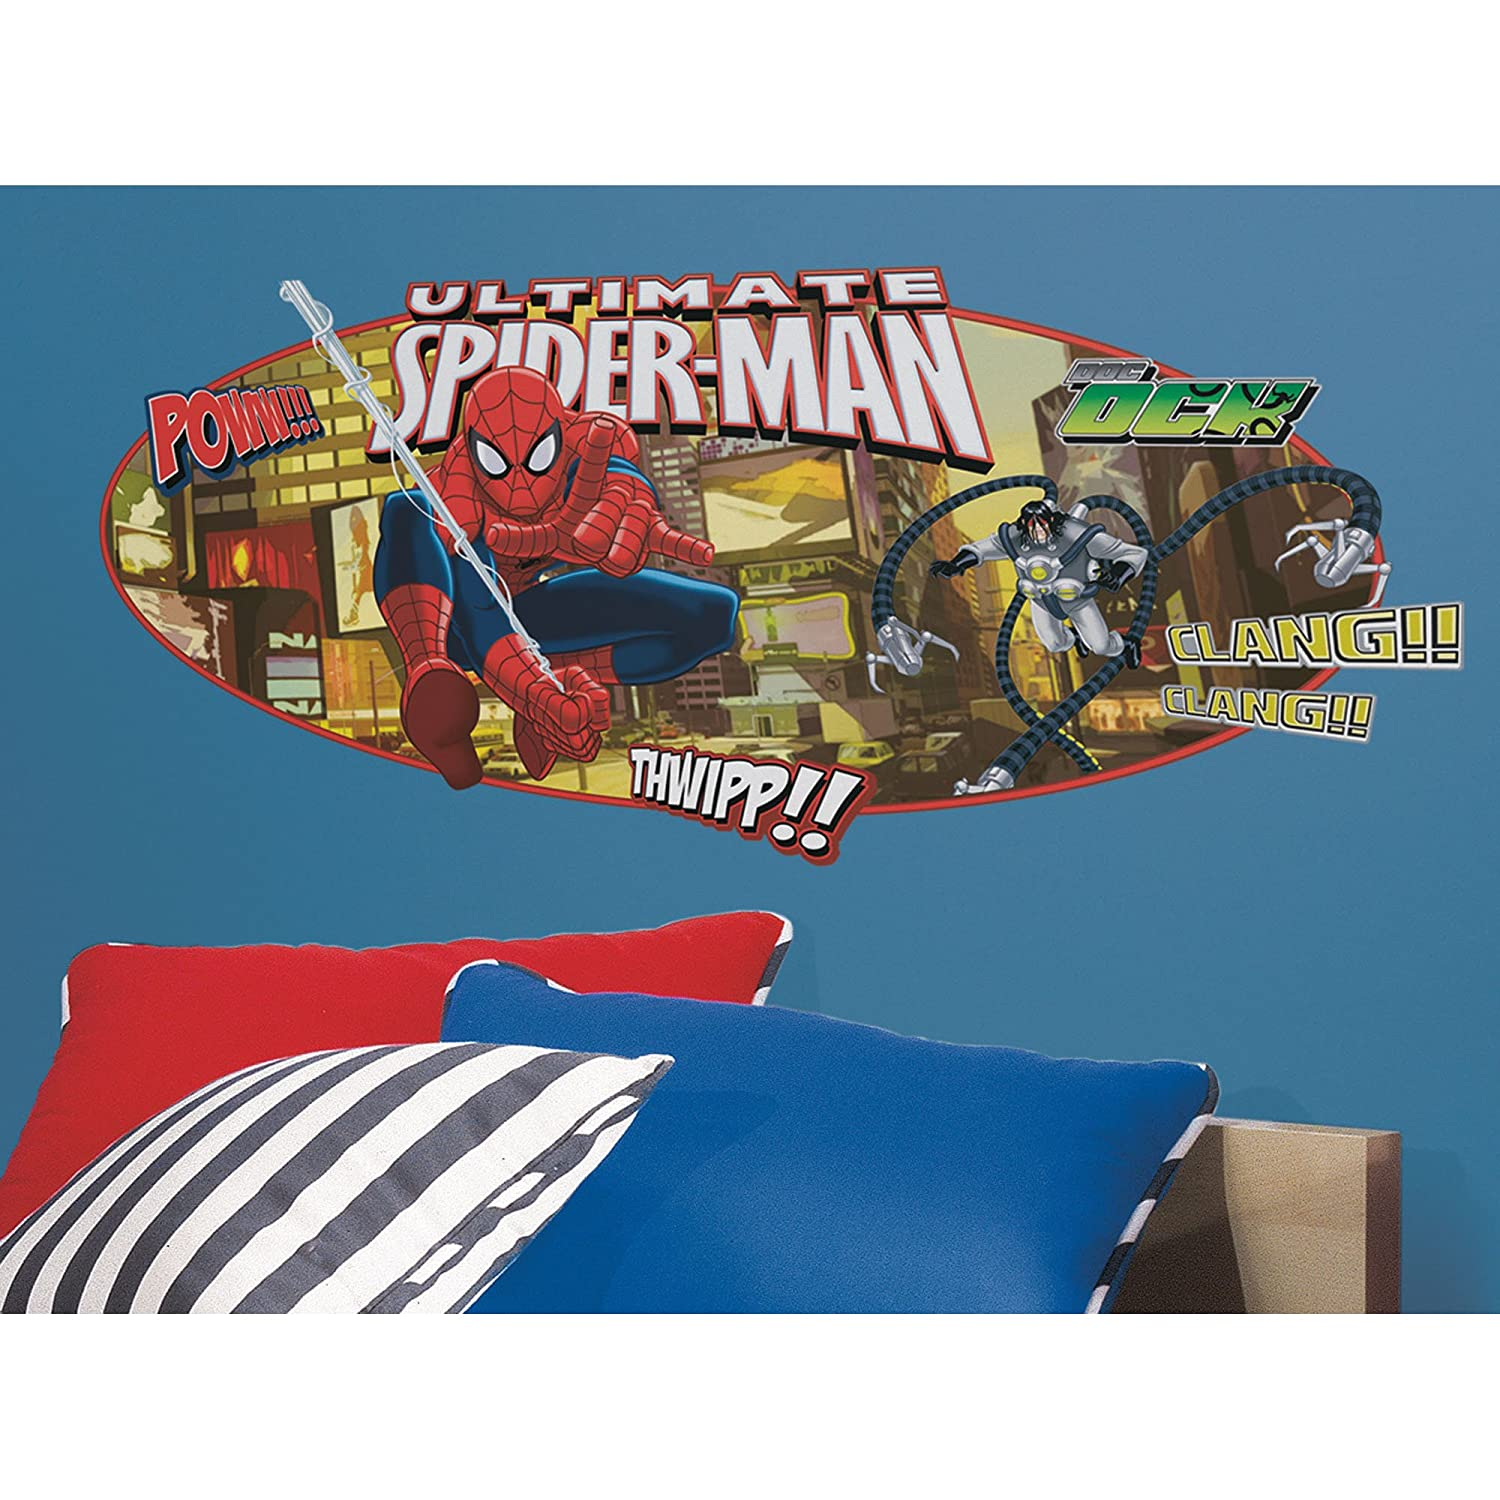 Ultimate Spiderman Headboard Peel and Stick Giant Wall Decal